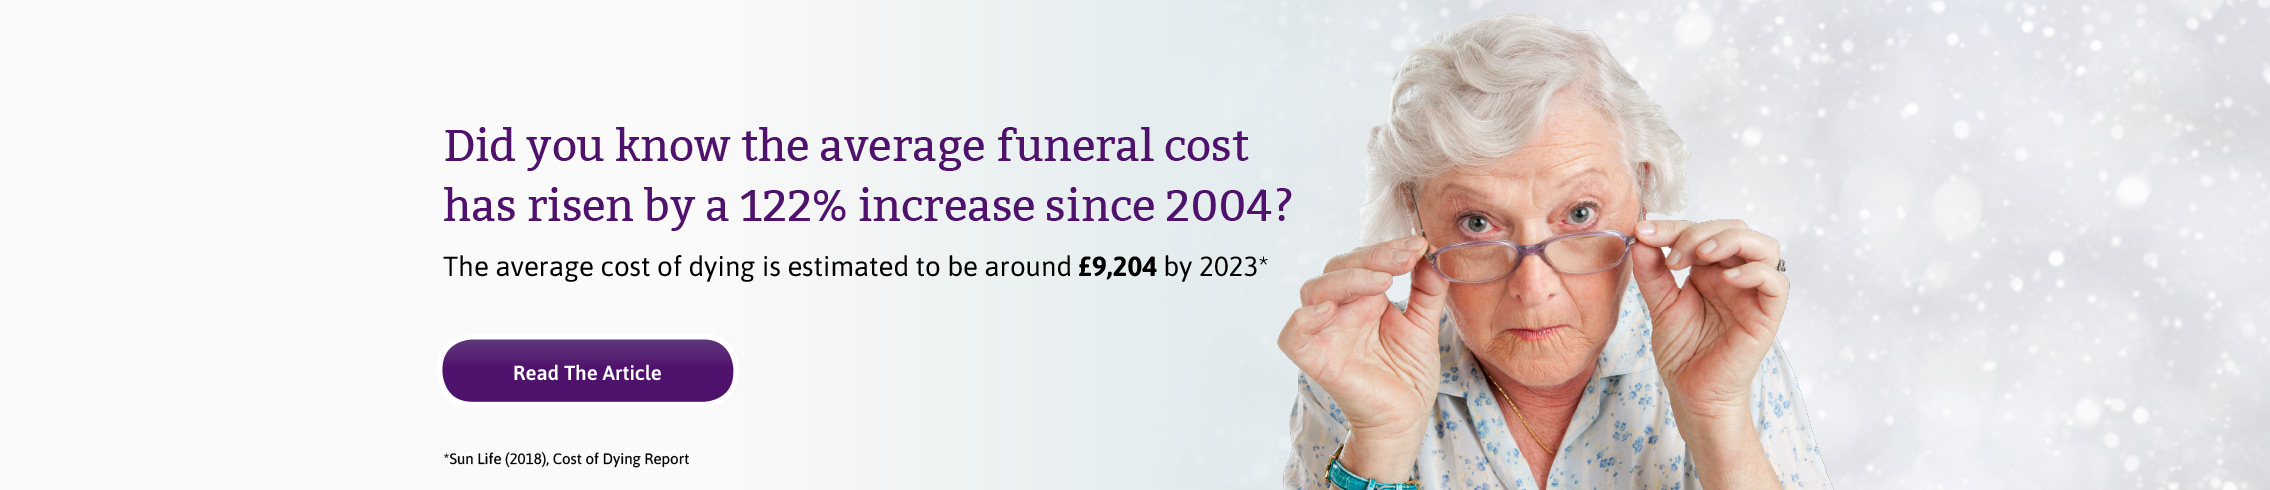 funeral directors stockport funeral costs prepaid funeral plans warrington chester cheshire manchester oldham macclesfield uk